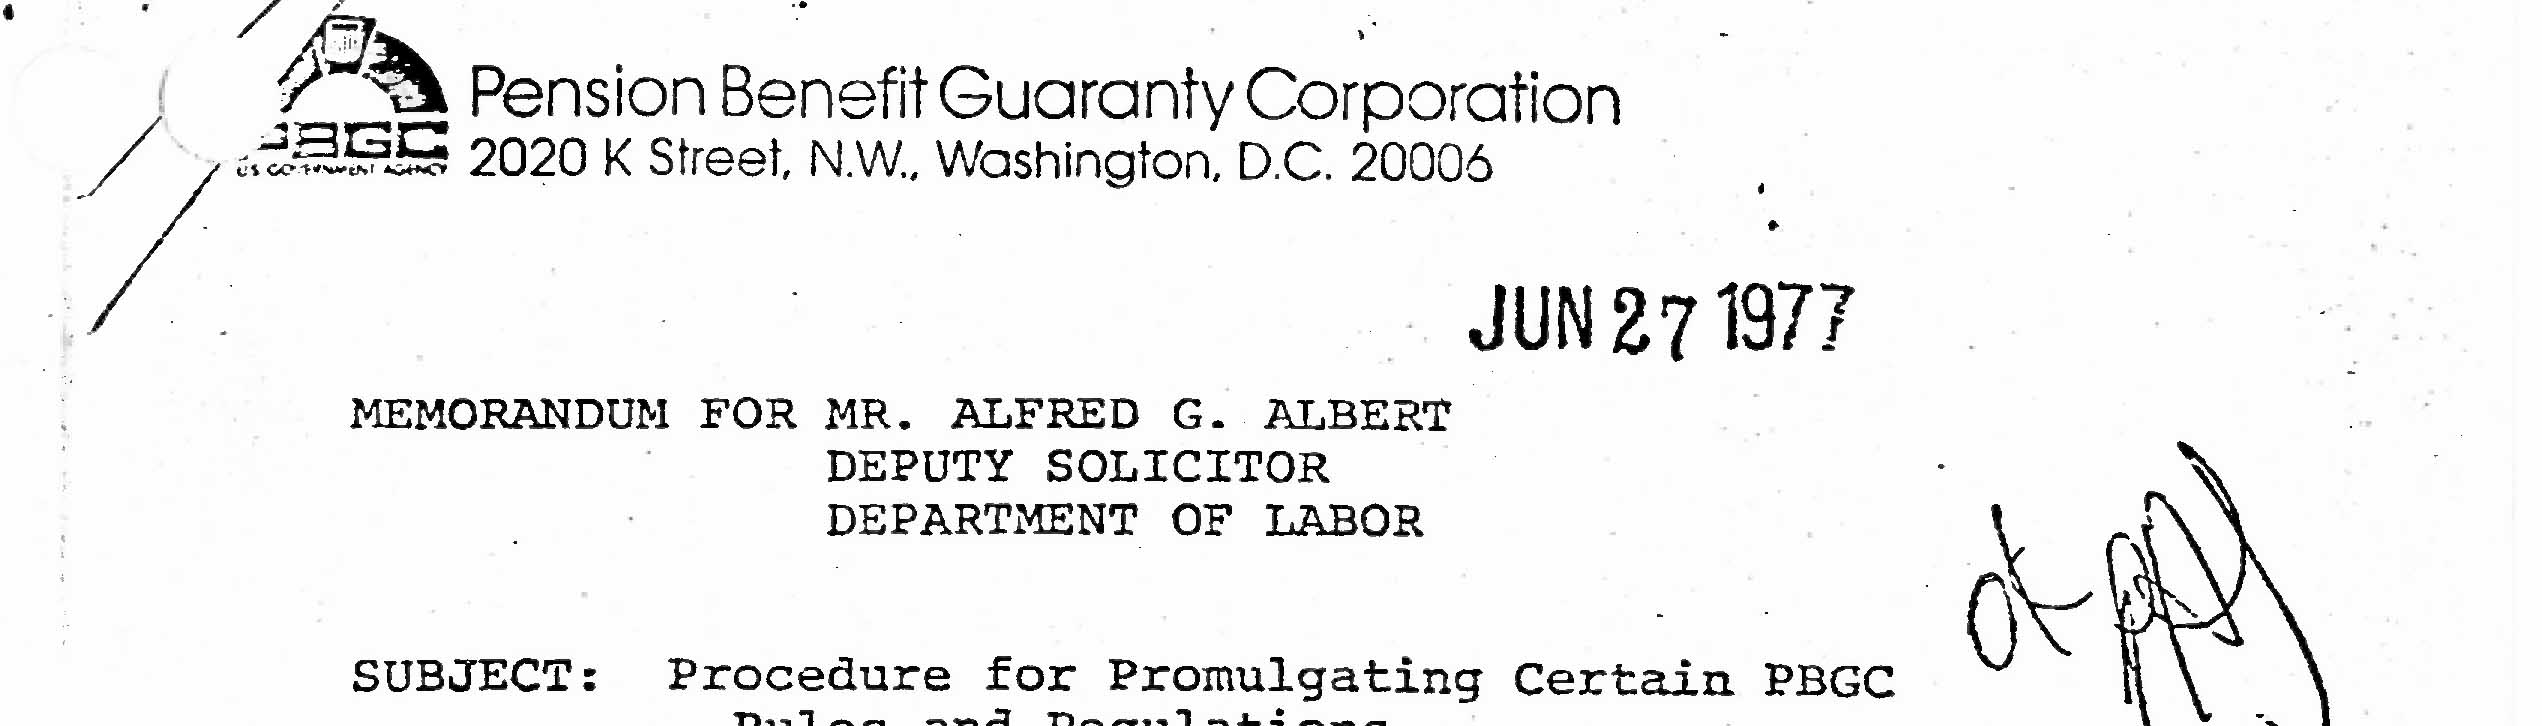 Records of the Pension Benefit Guaranty Corporation